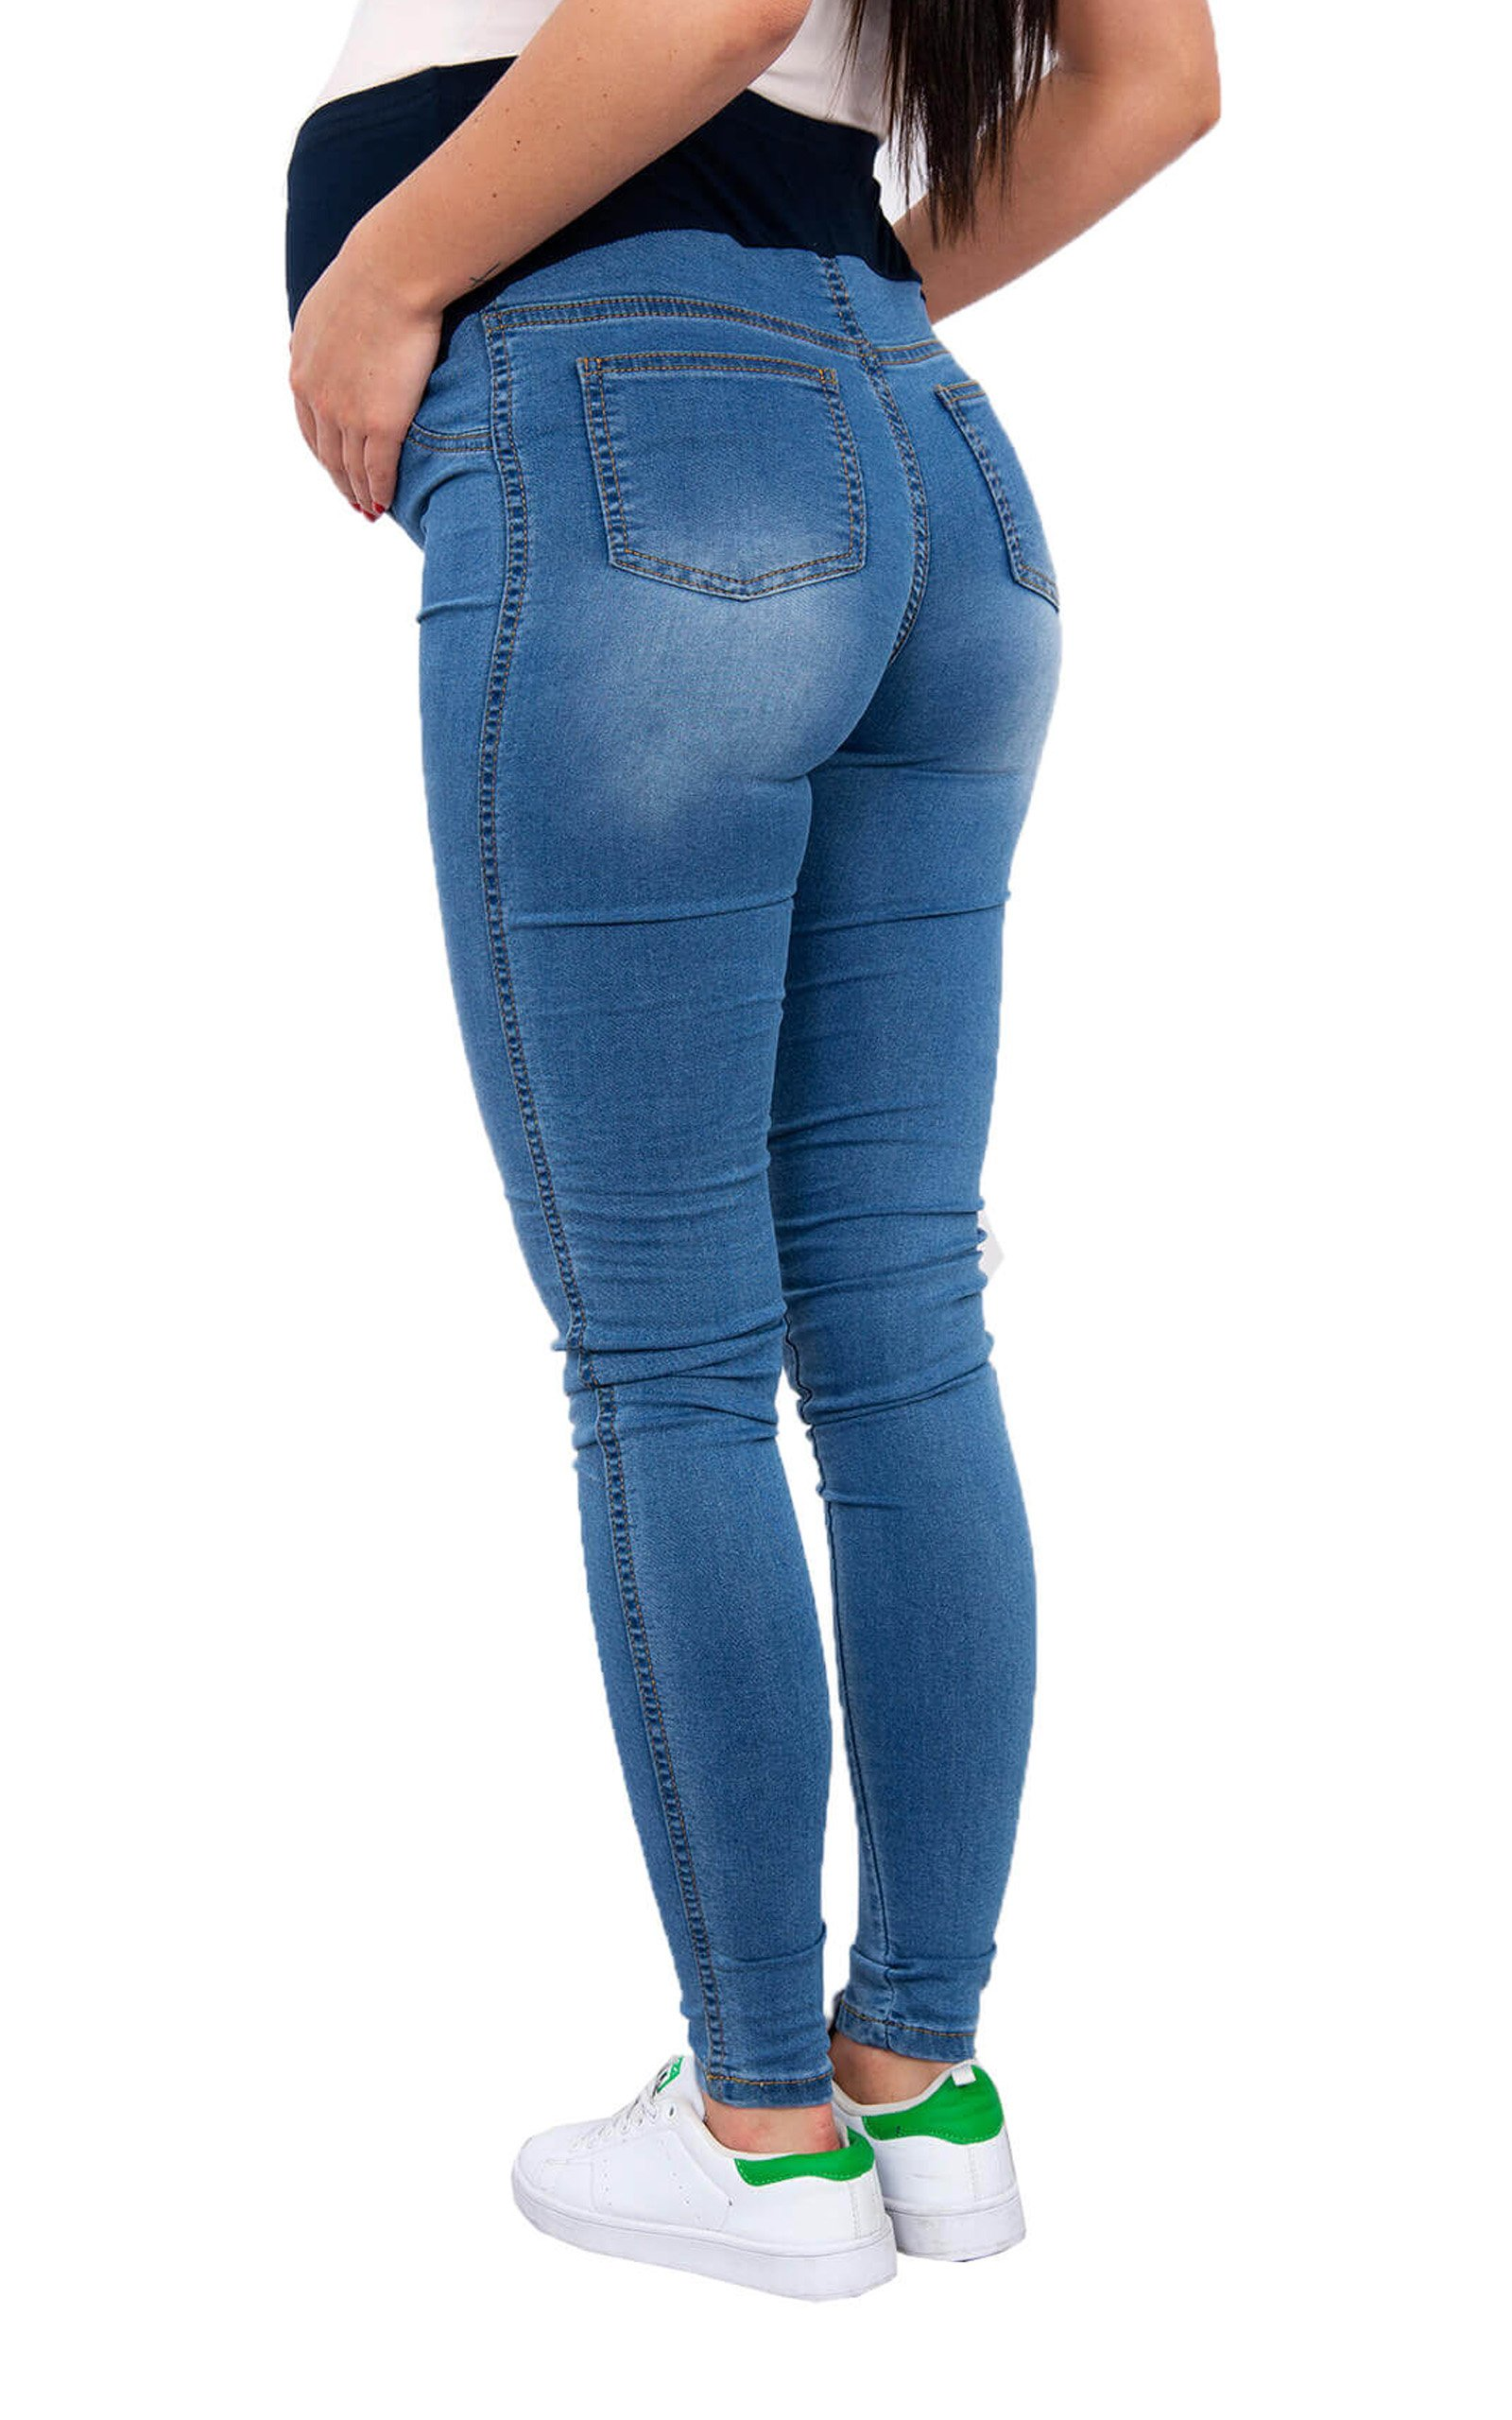 WozWoz Womens Maternity Jeans Skinny (Large, Blue Jeans)